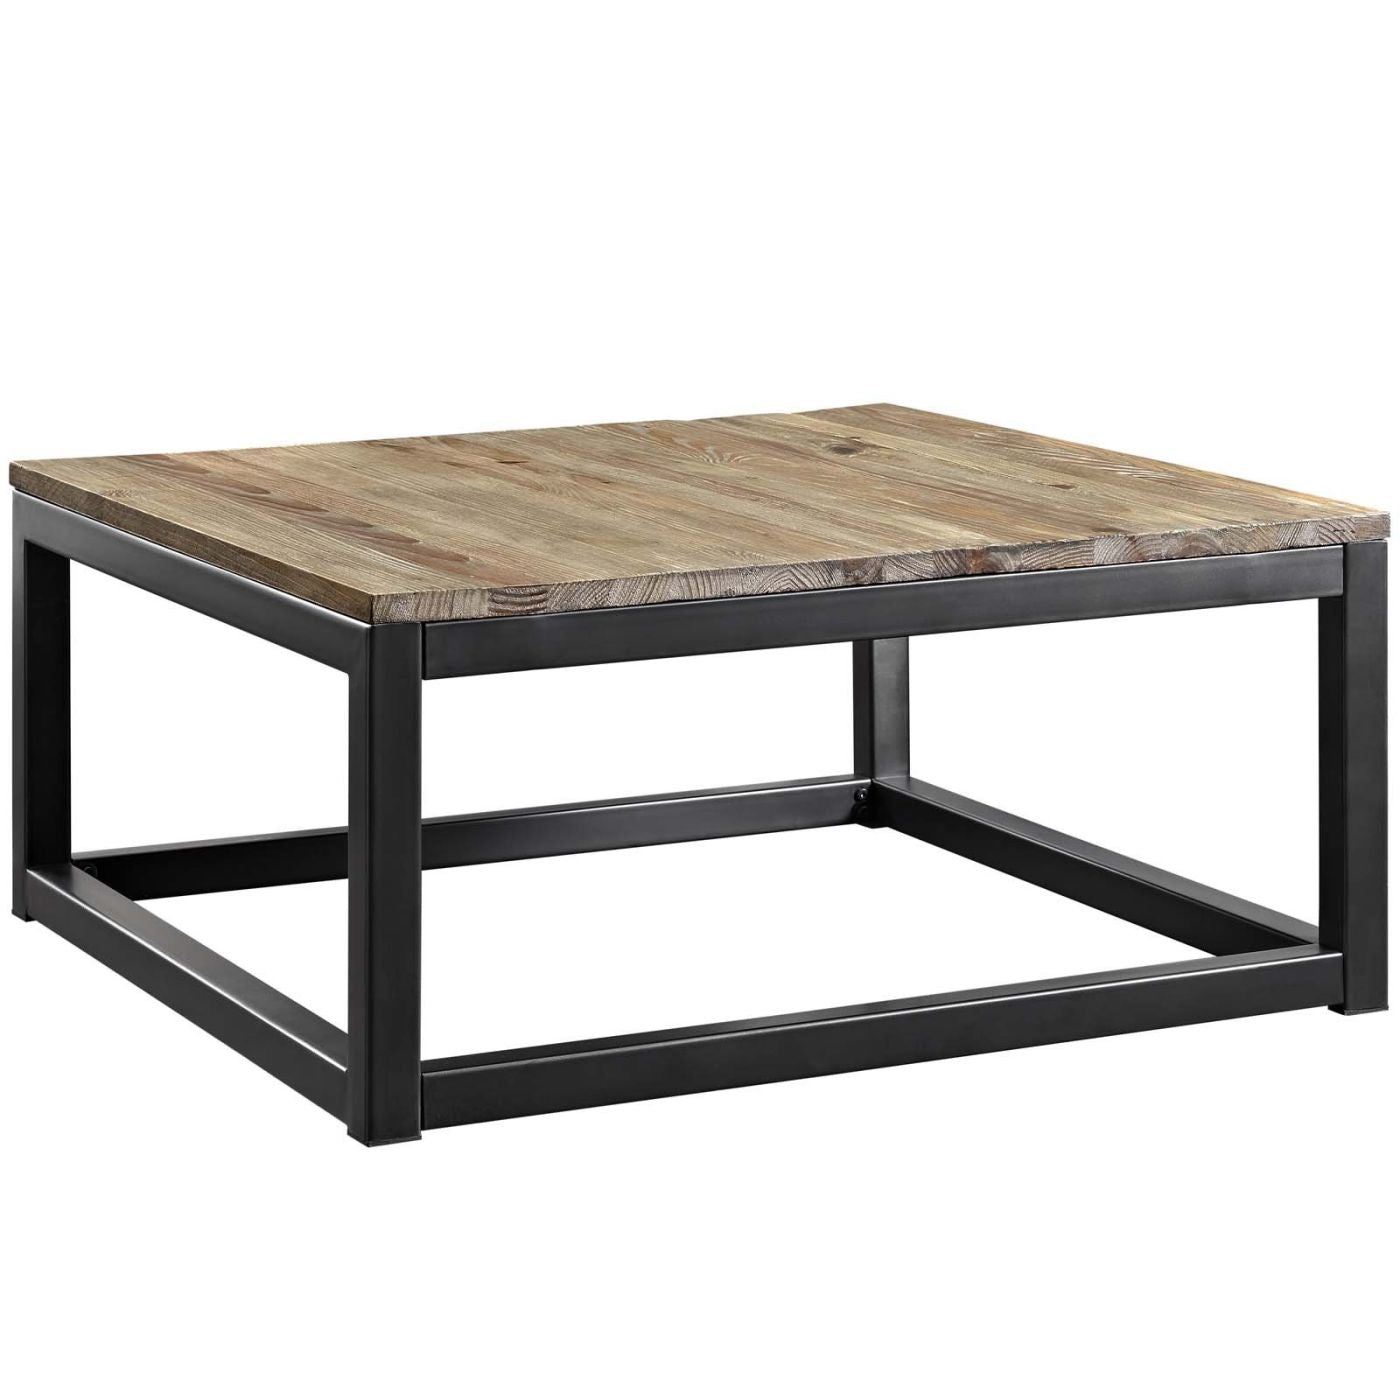 Fine Modway Coffee Tables On Sale Eei 2774 Brn Attune Reclaimed Look Industrial Modern Coffee Table Only Only 325 30 At Contemporary Furniture Warehouse Gamerscity Chair Design For Home Gamerscityorg